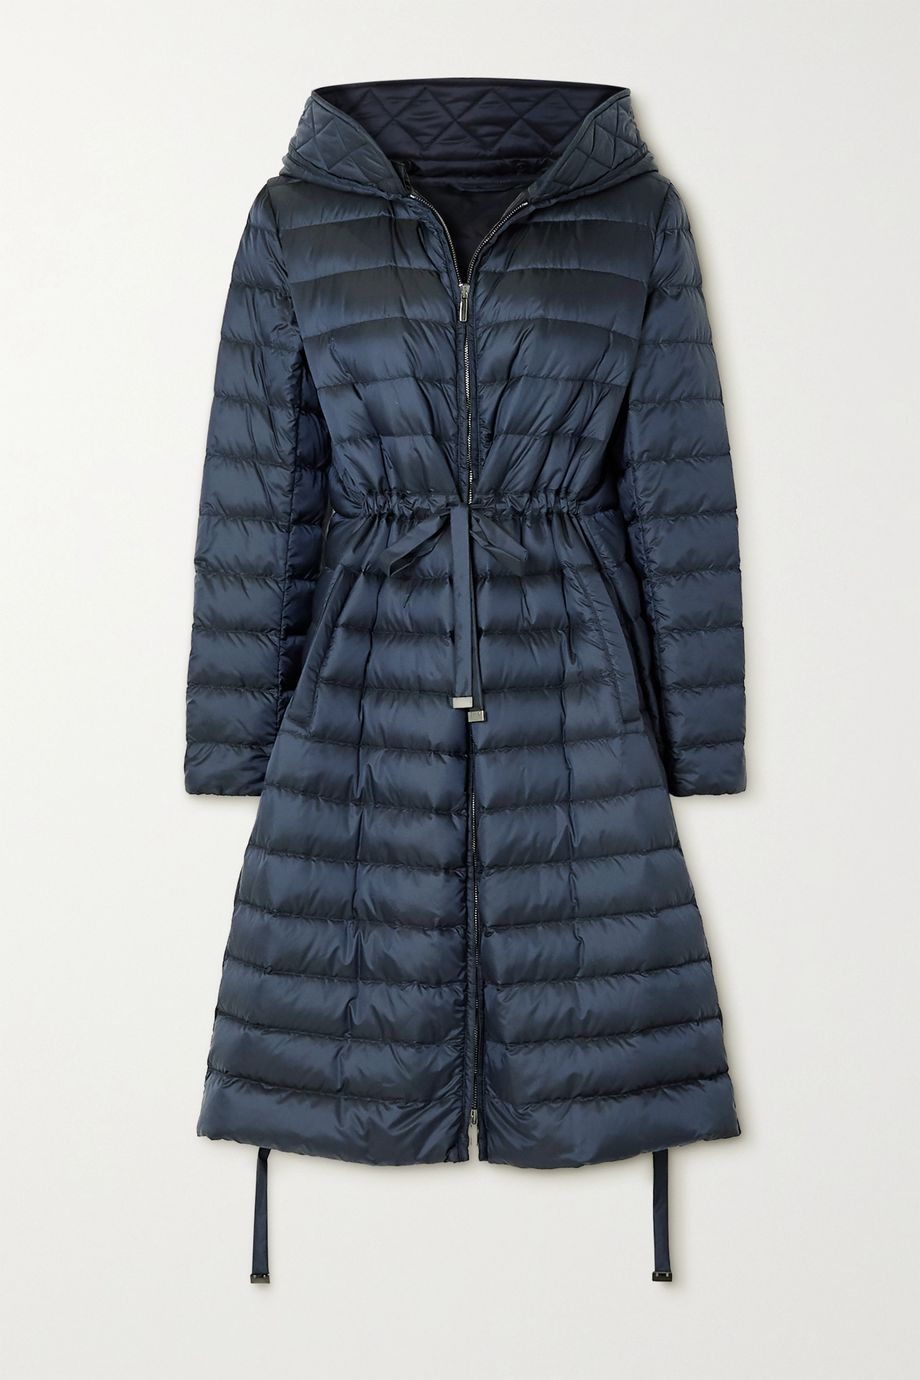 Max Mara The Cube hooded quilted shell down jacket